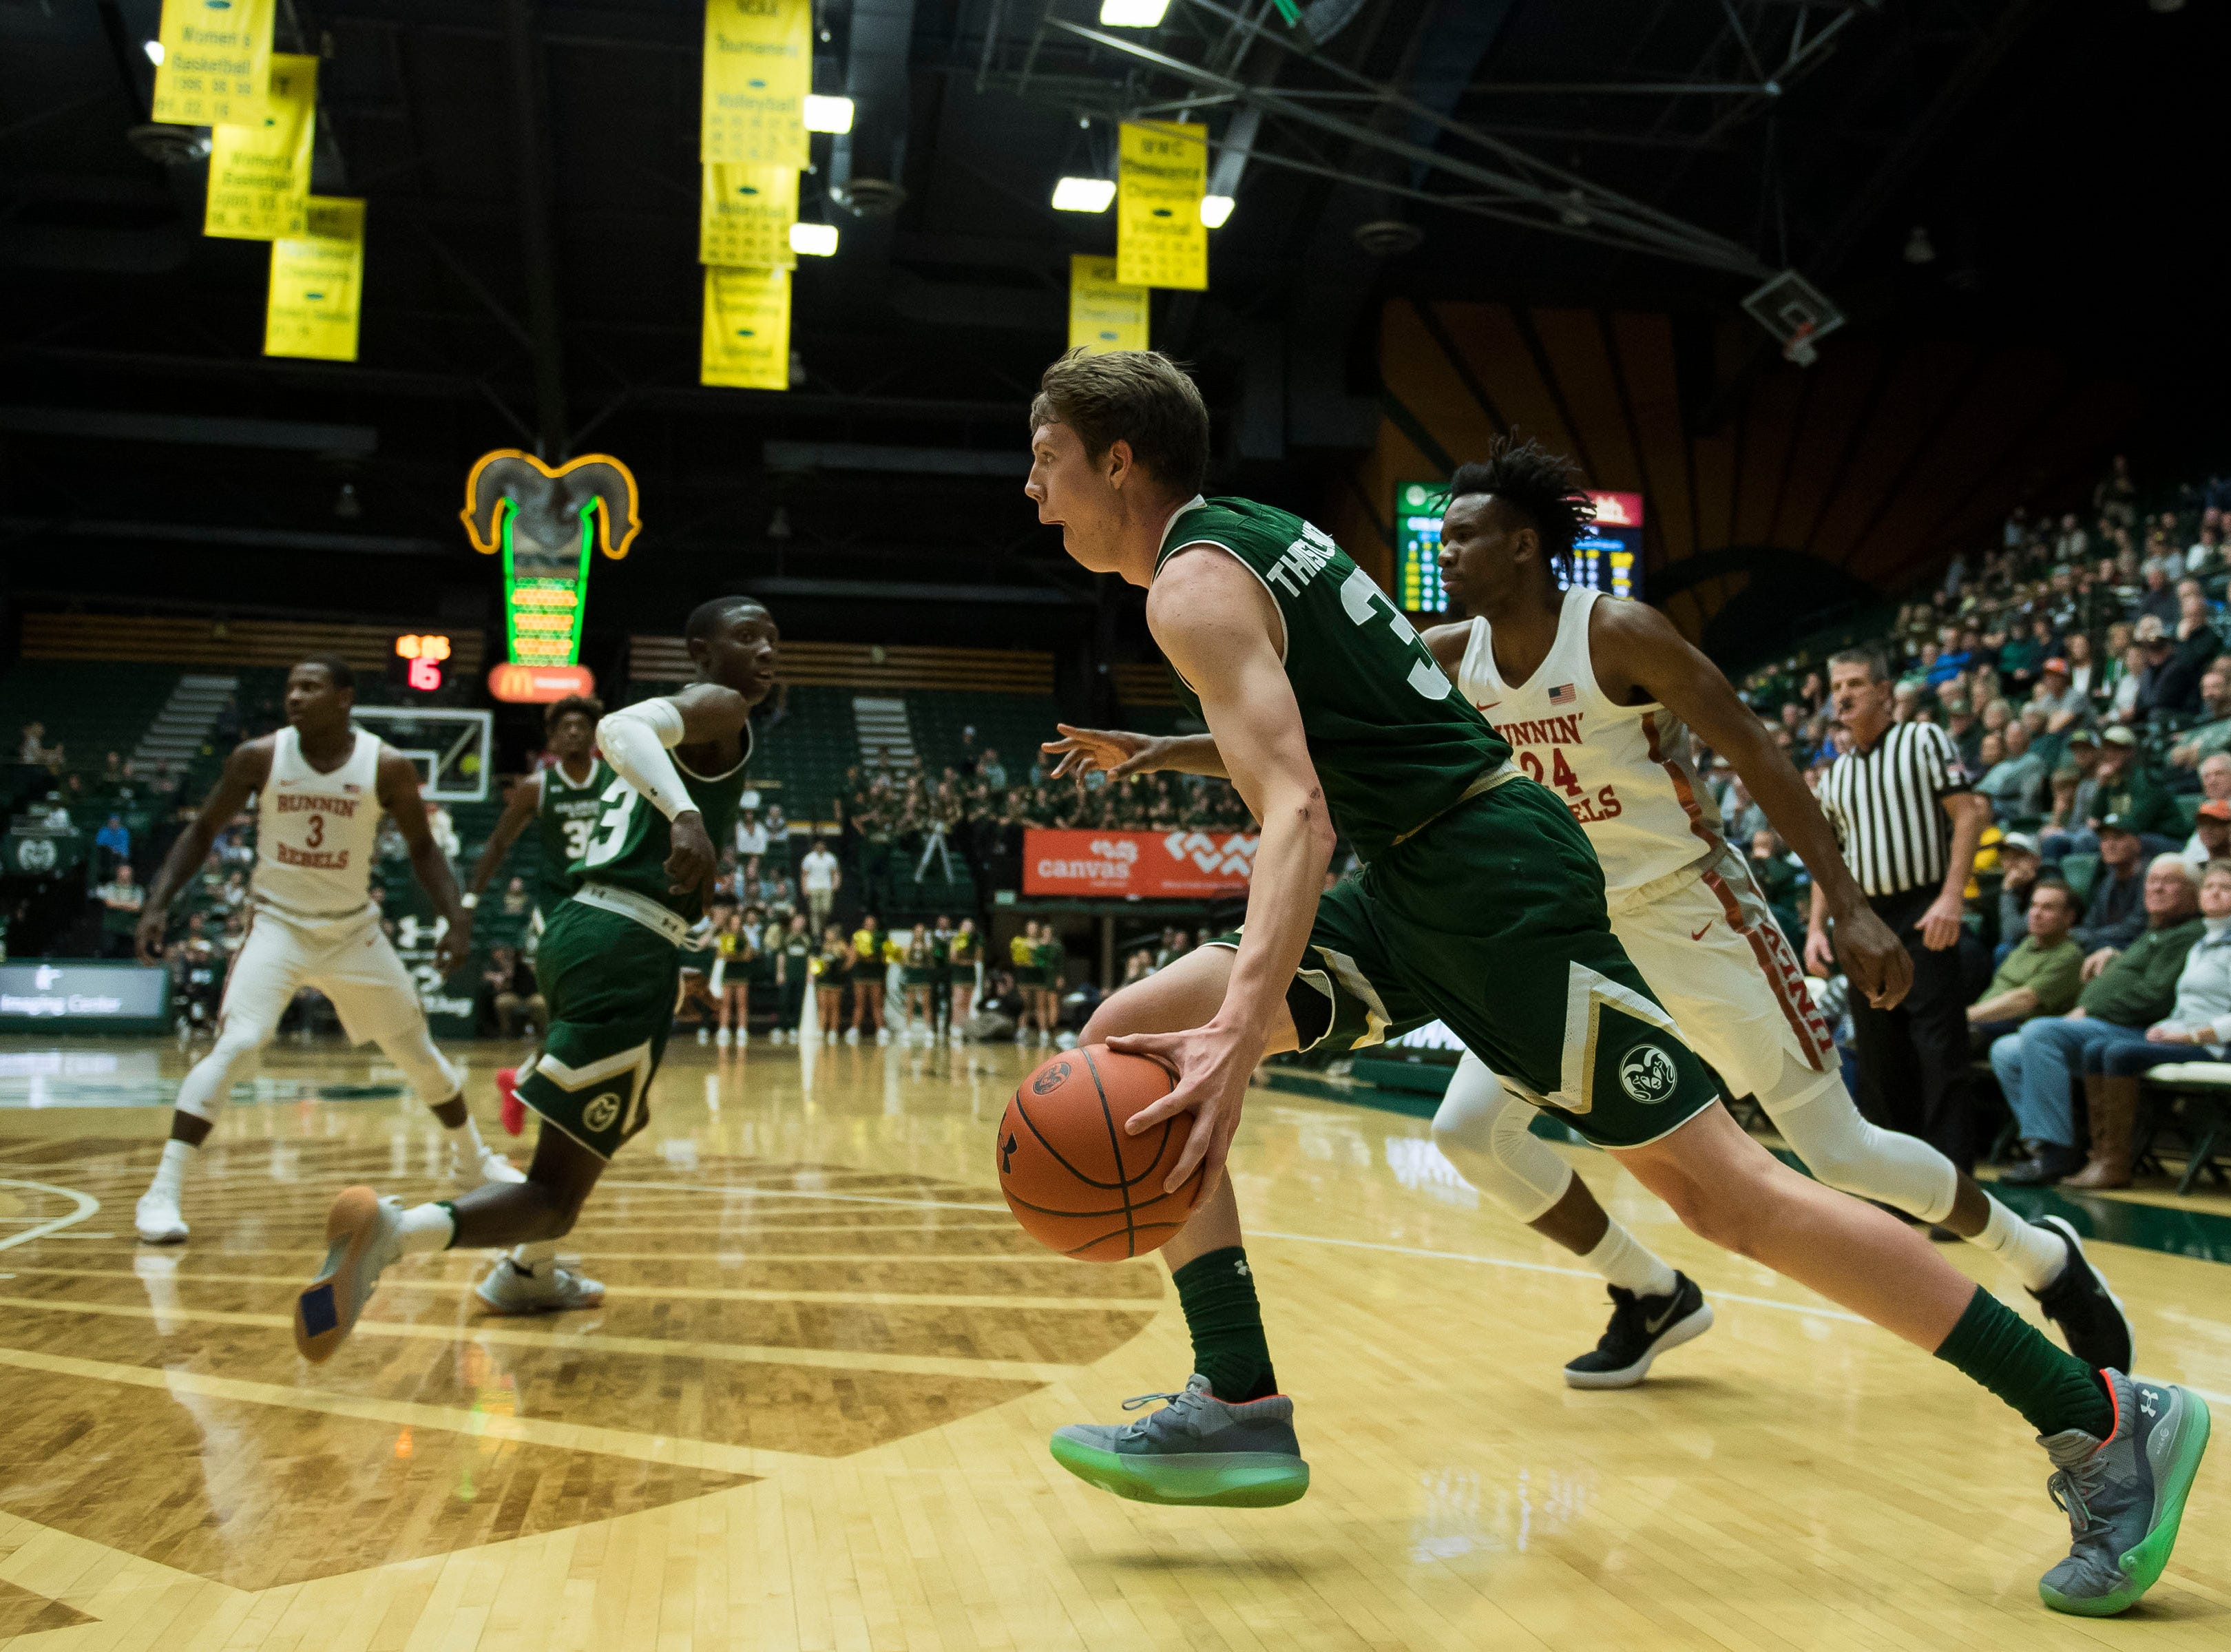 Colorado State University freshman forward Adam Thistlewood (31) drives to the basket past University of Nevada Las Vegas freshman forward Joel Ntambwe (24) on Saturday, March 9, 2019, at Moby Arena in Fort Collins, Colo.